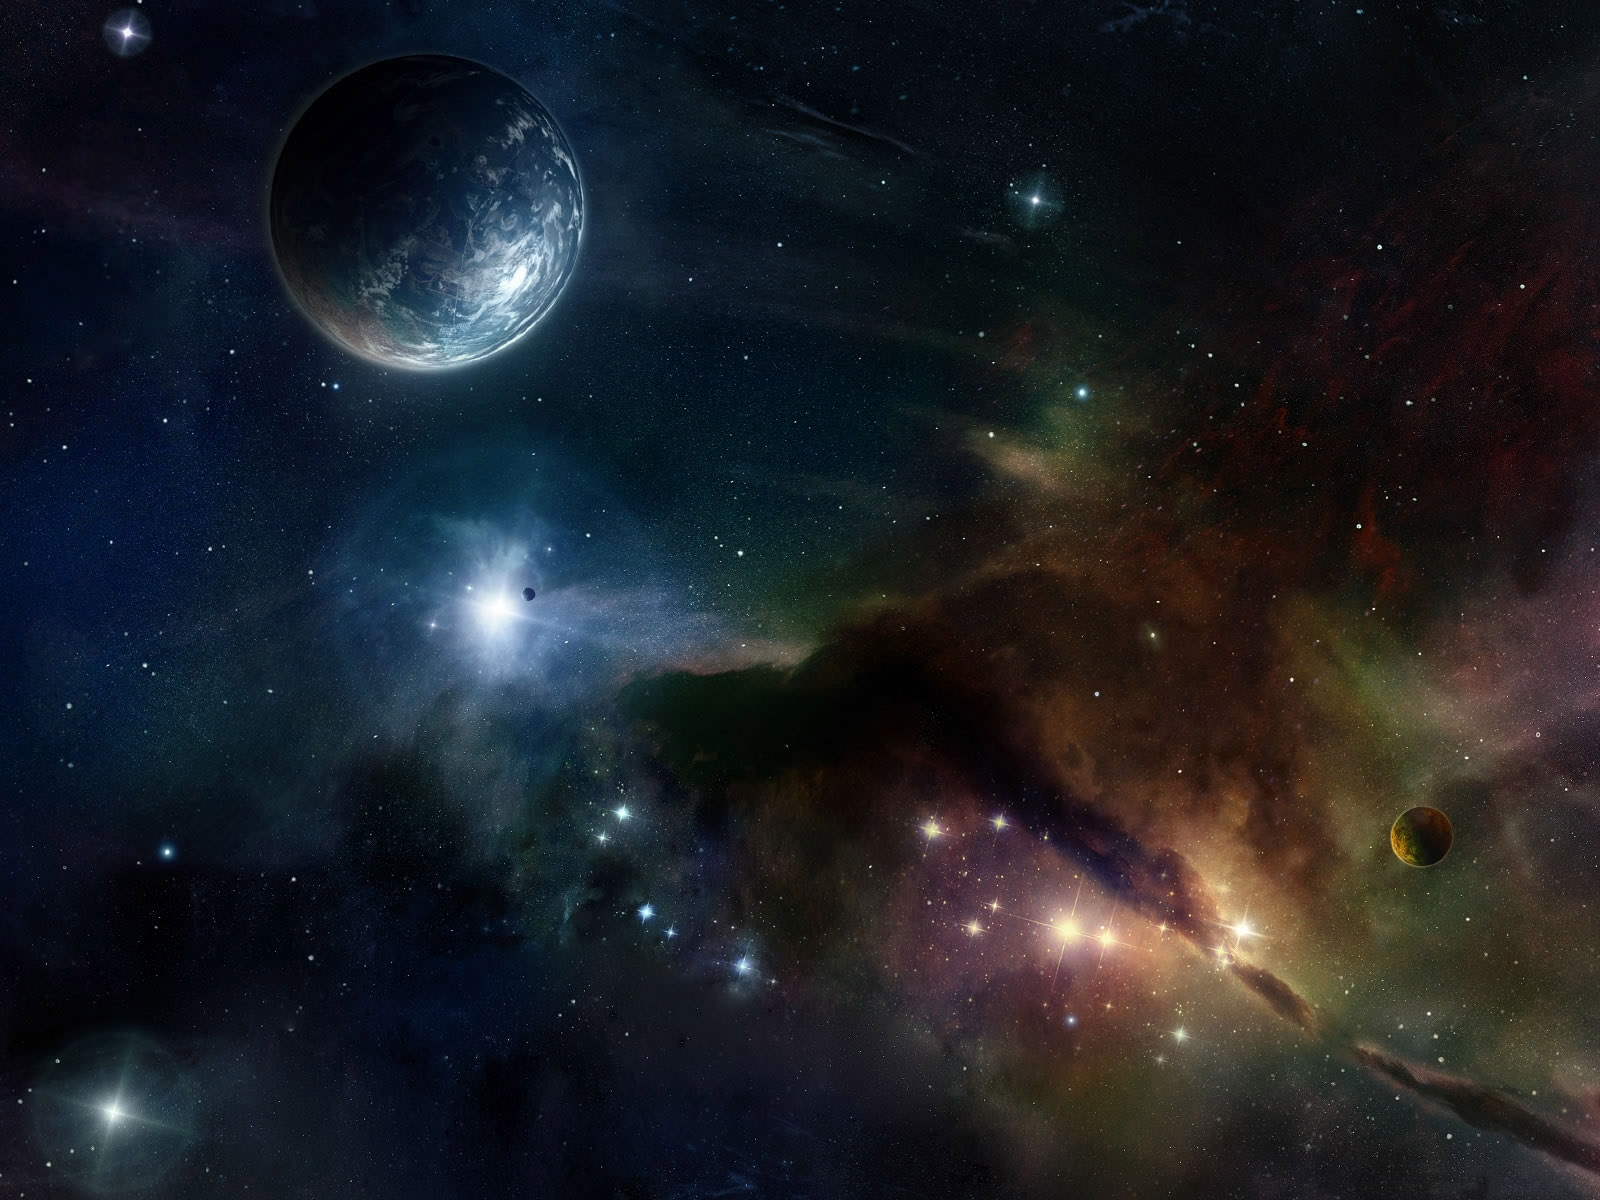 astronomy backgrounds wallpaper - photo #38